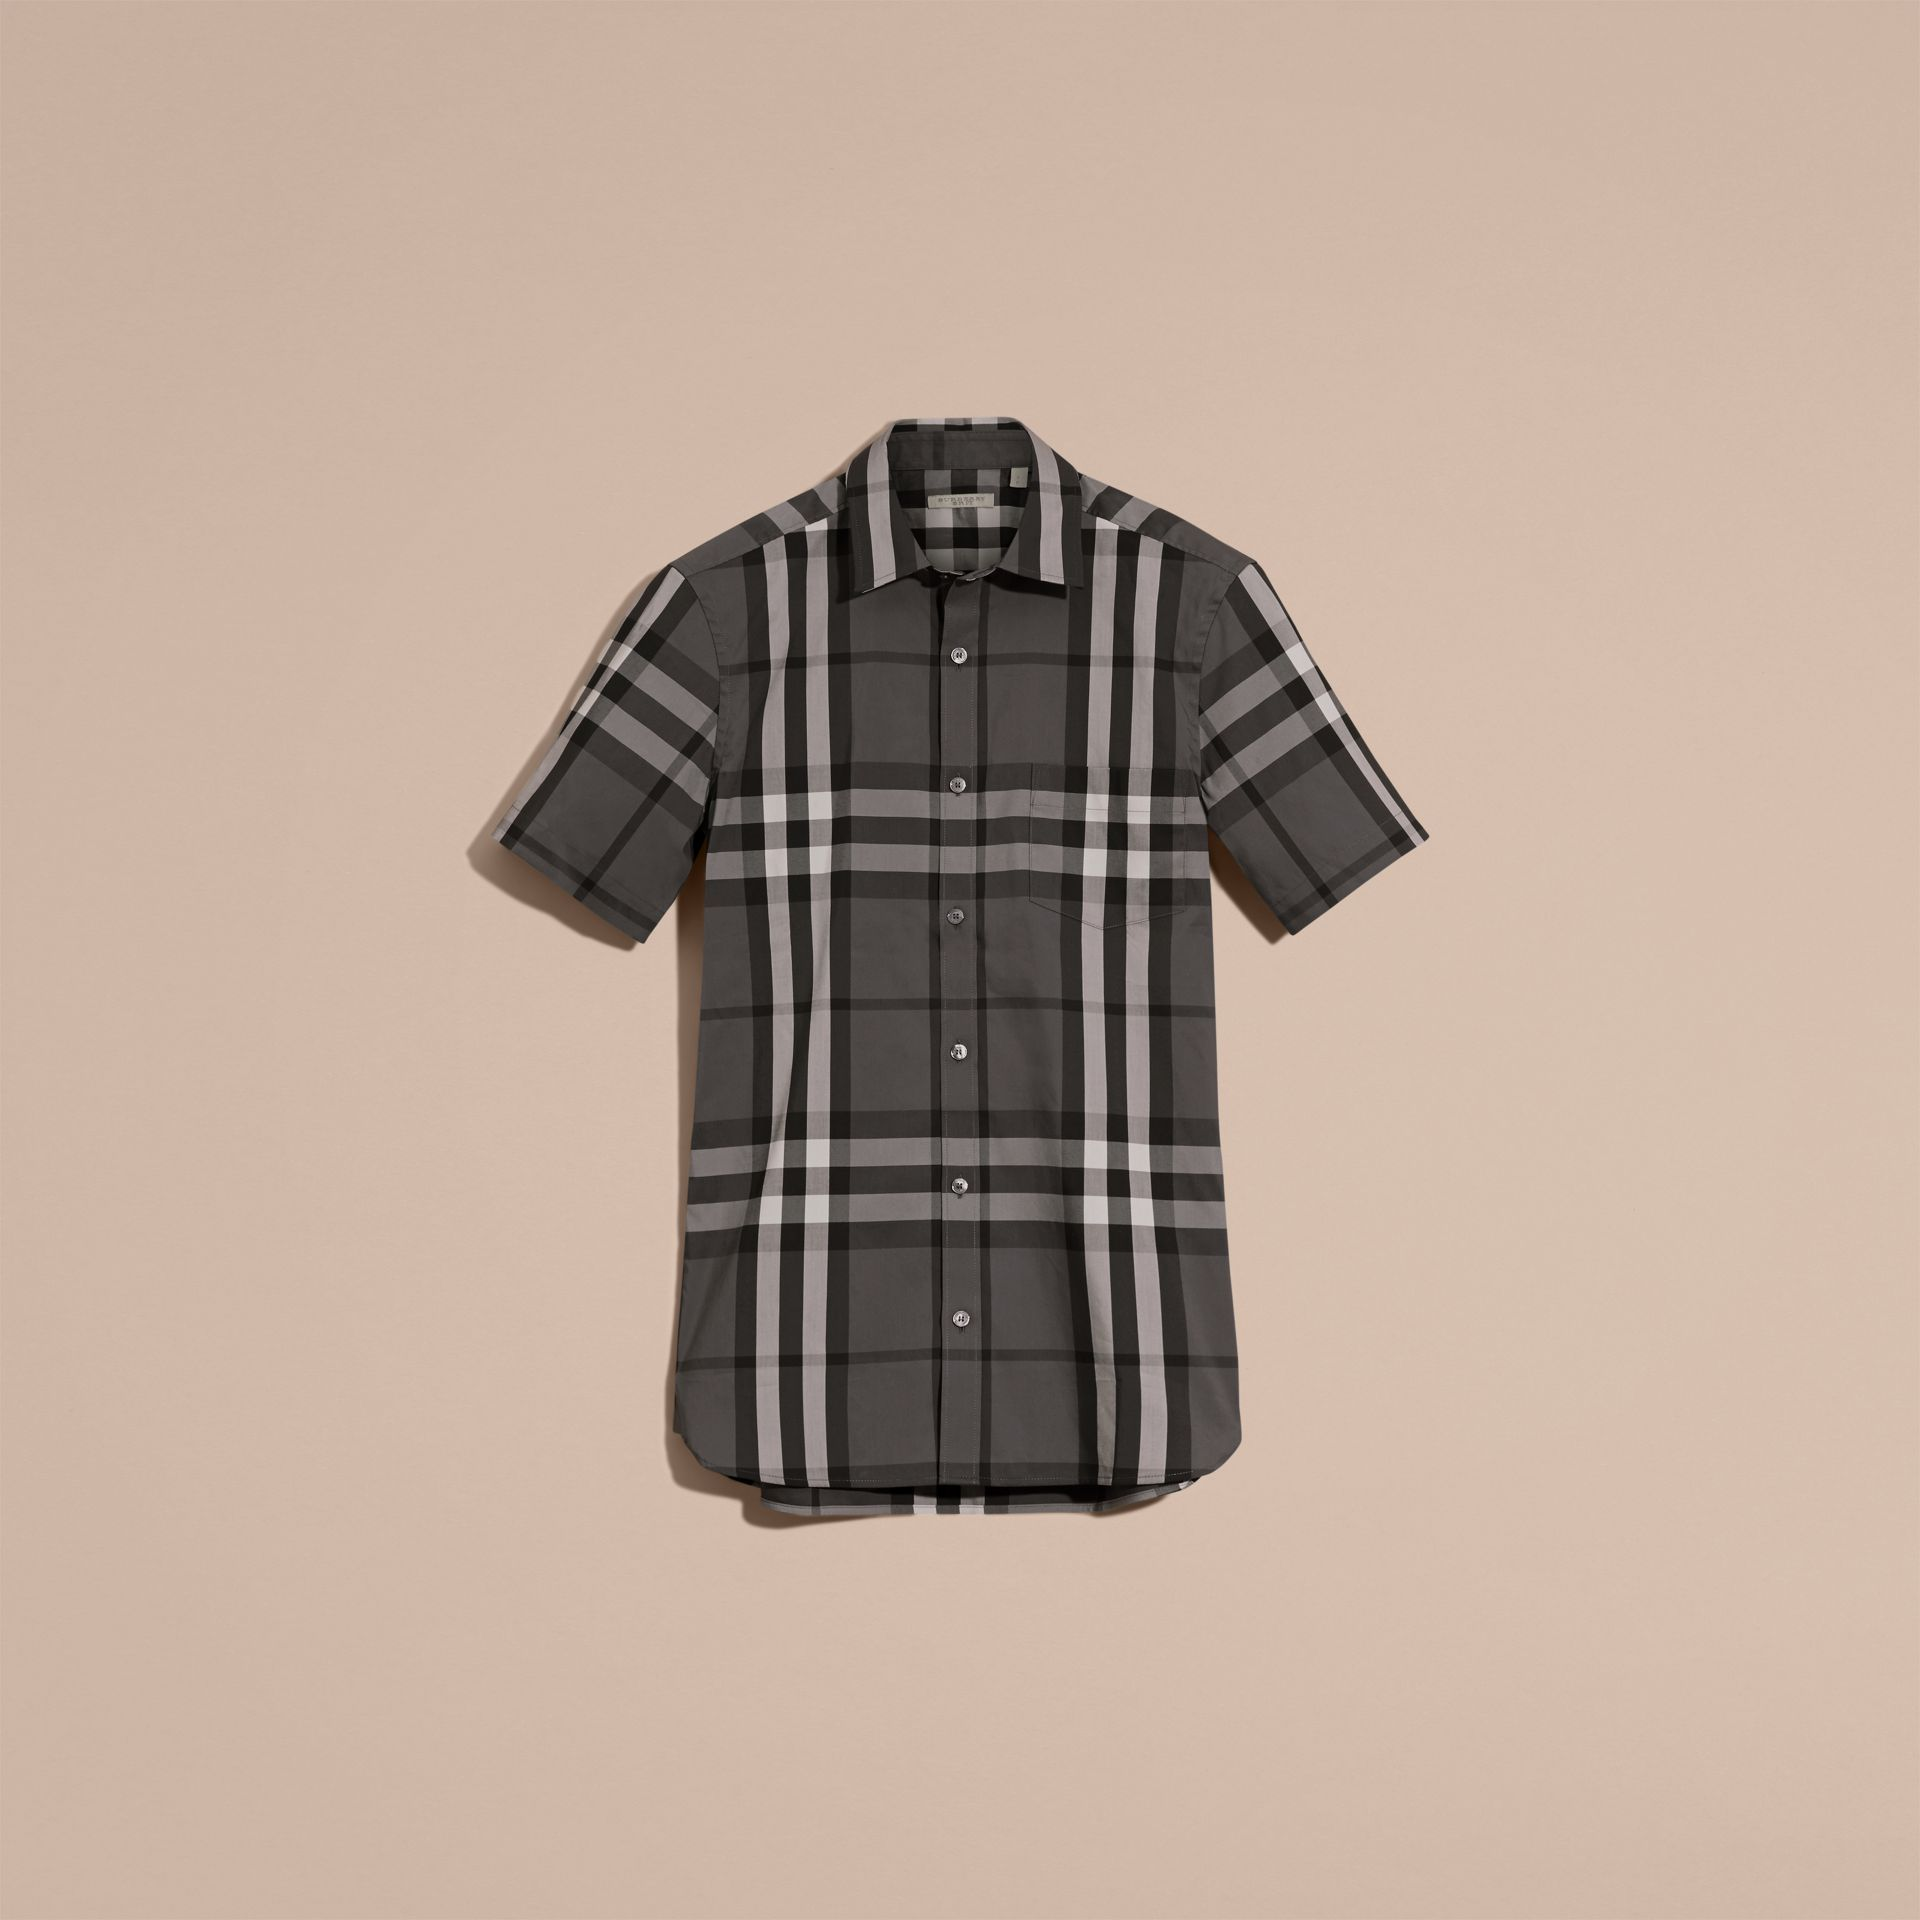 Charcoal Short-sleeved Check Stretch Cotton Shirt Charcoal - gallery image 4